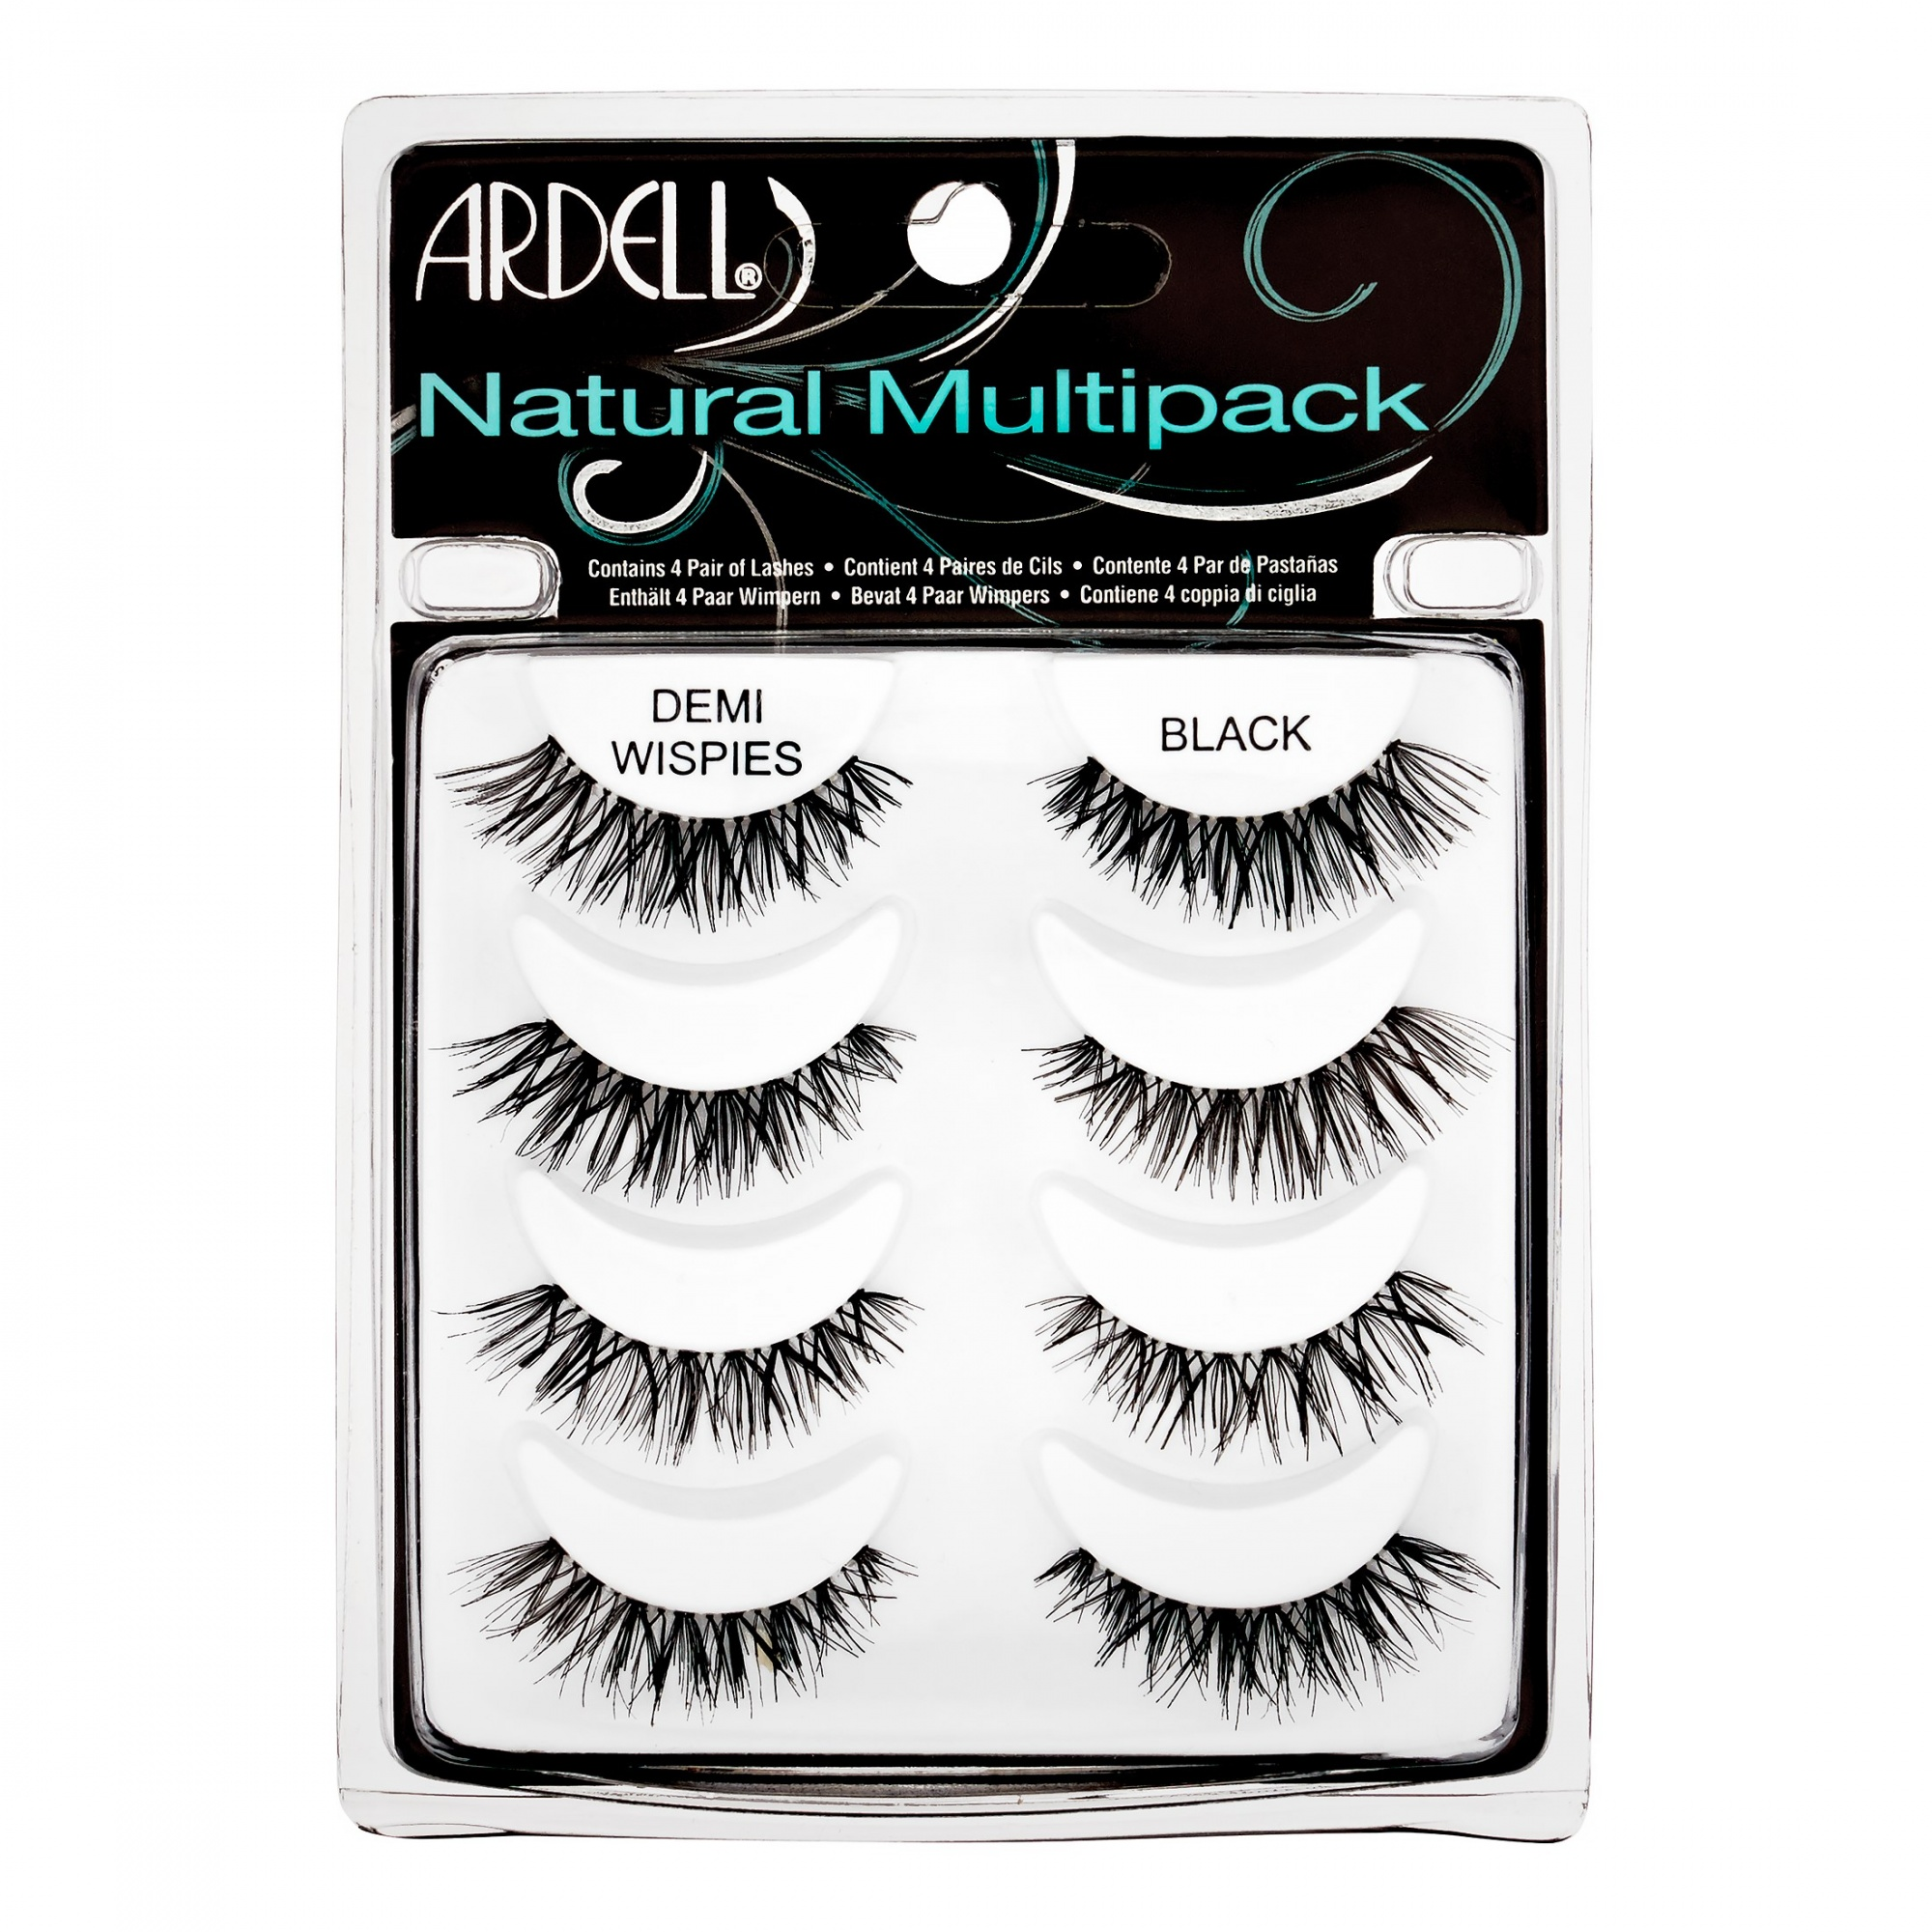 bbcb0a1d790 Ardell Multipack Demi Wispies Fake Eyelashes by Ardell - Shop Online ...